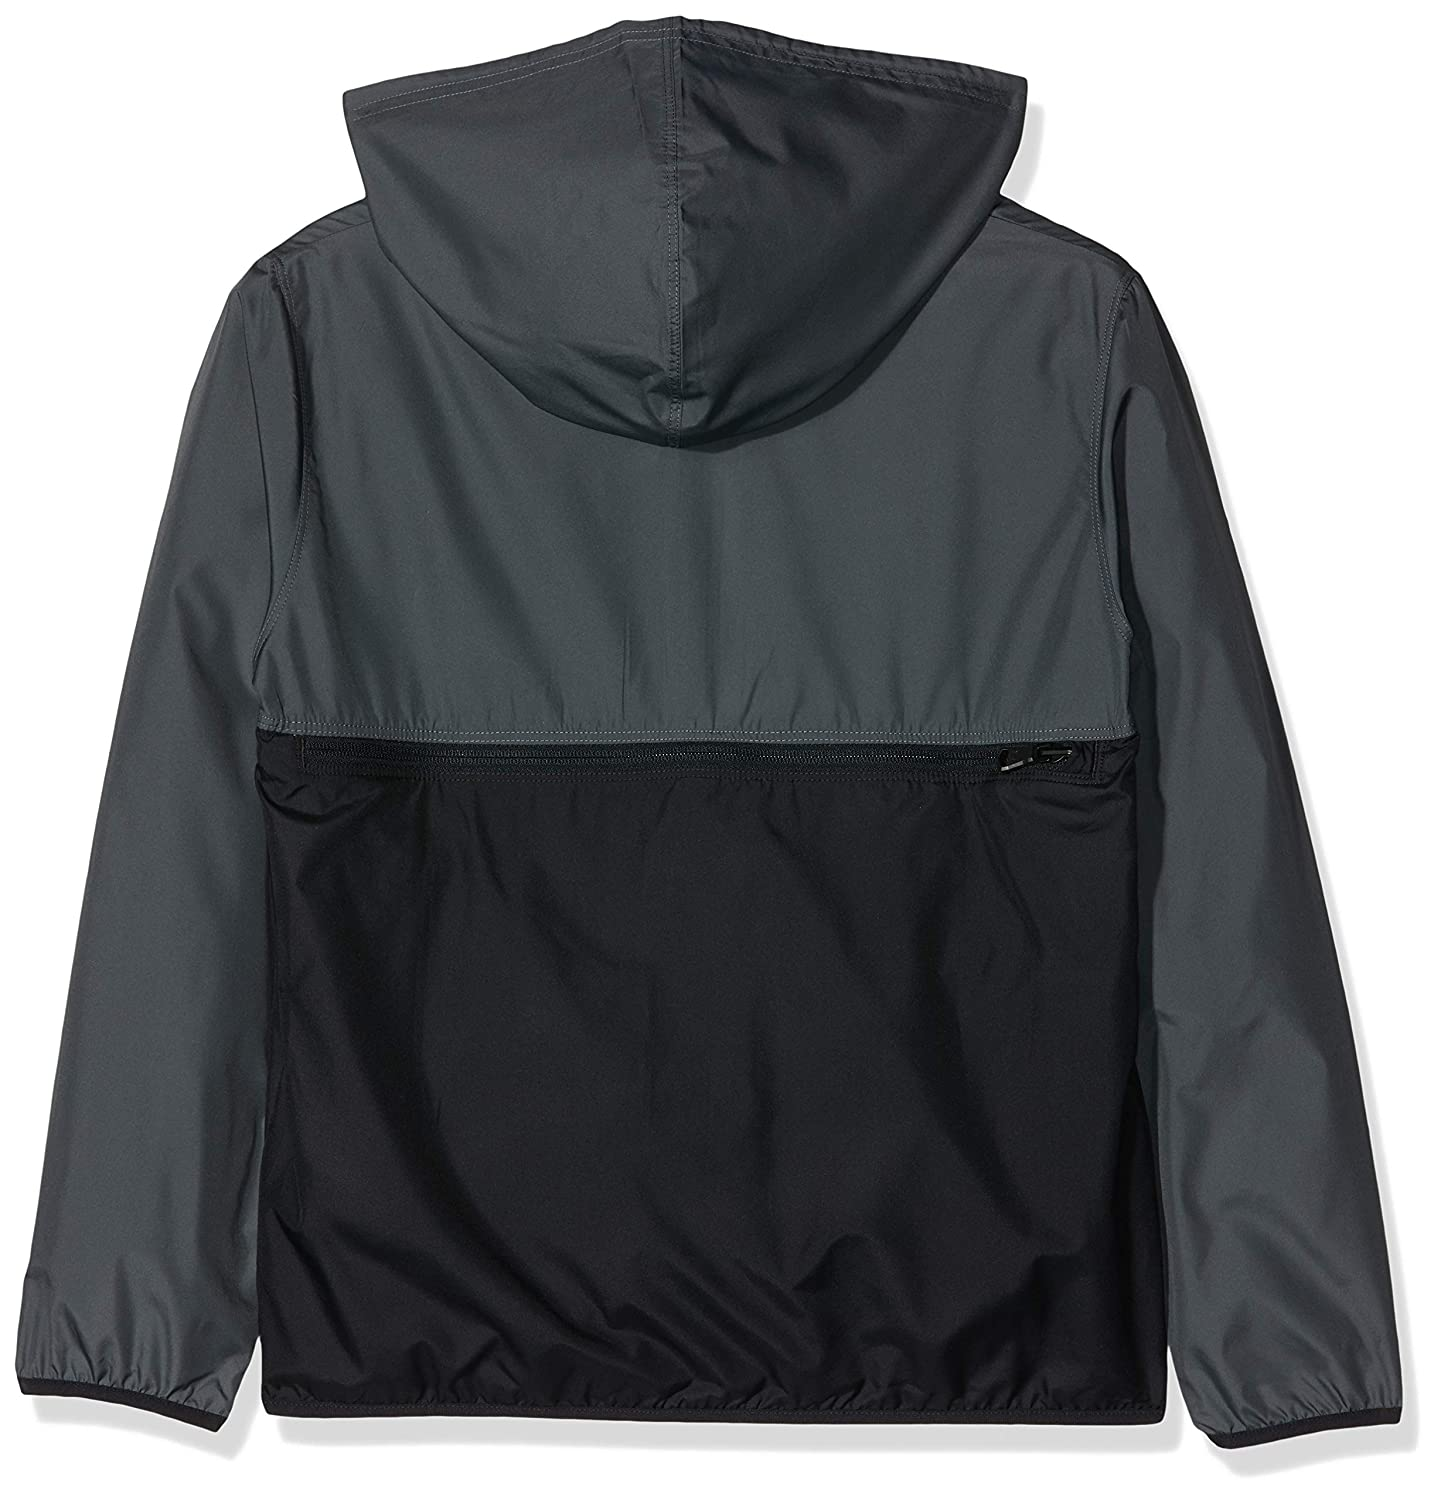 66559f37d Amazon.com: Under Armour Boys Packable 1/2 Zip Jacket, Pitch Gray//Black,  Youth: Clothing